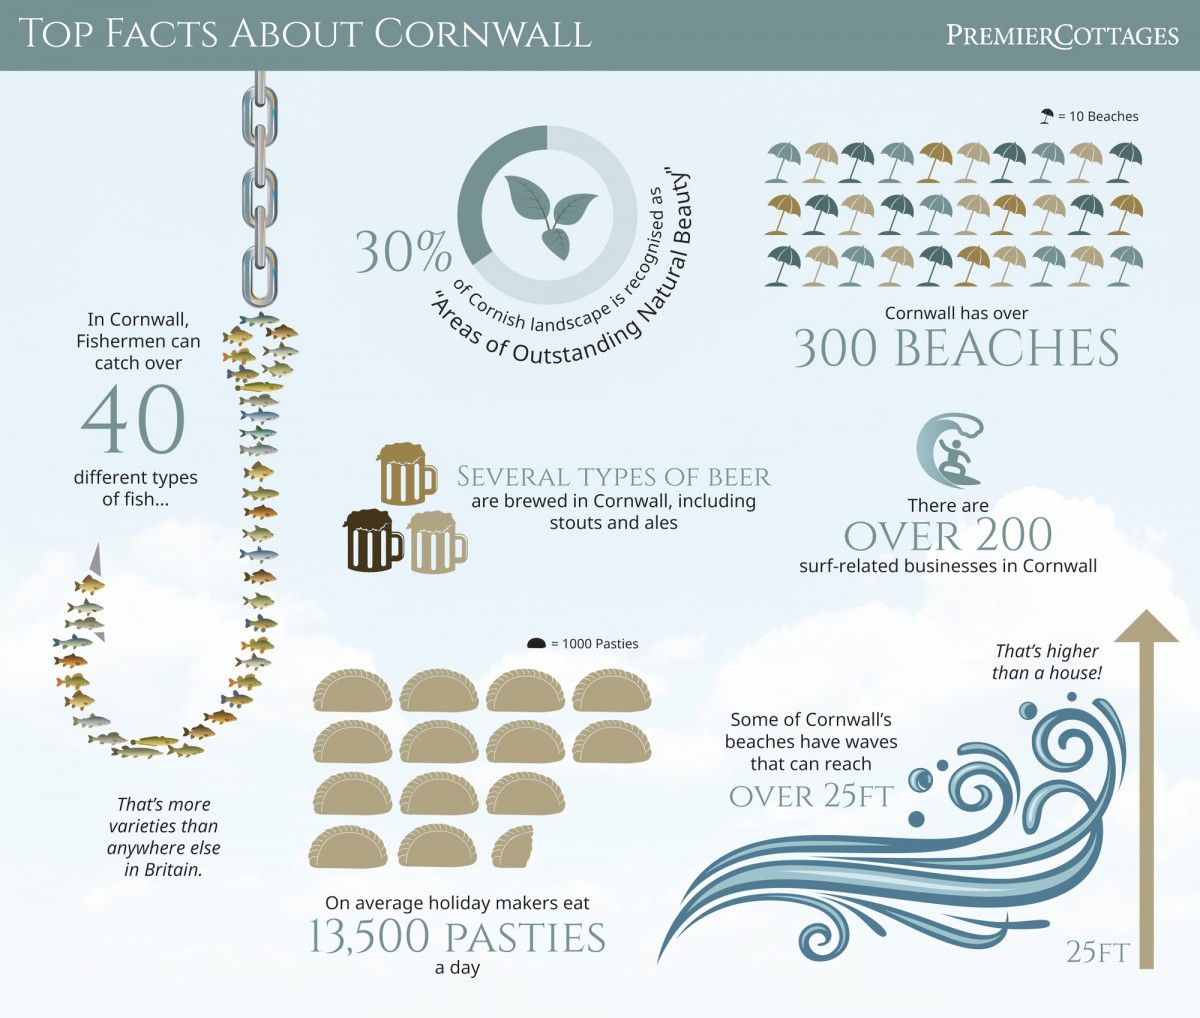 Leaflet on top facts about Cornwall